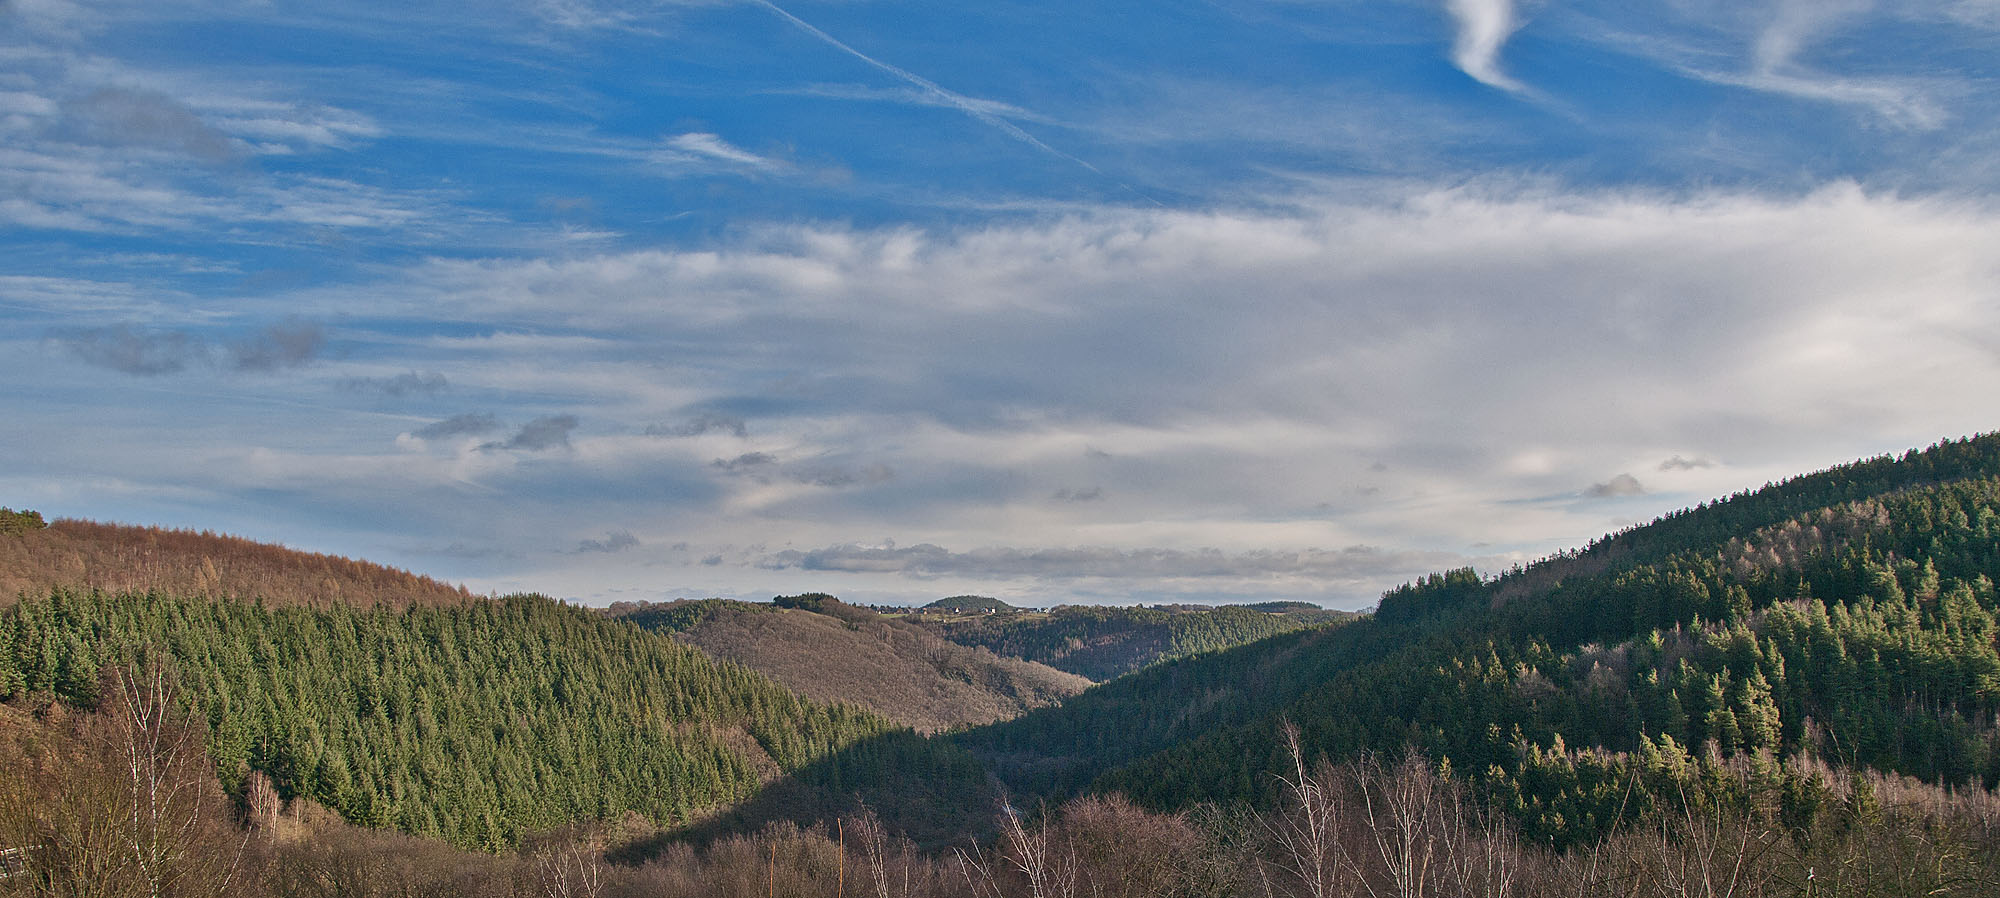 Eifelpanorama am 29.12.2012